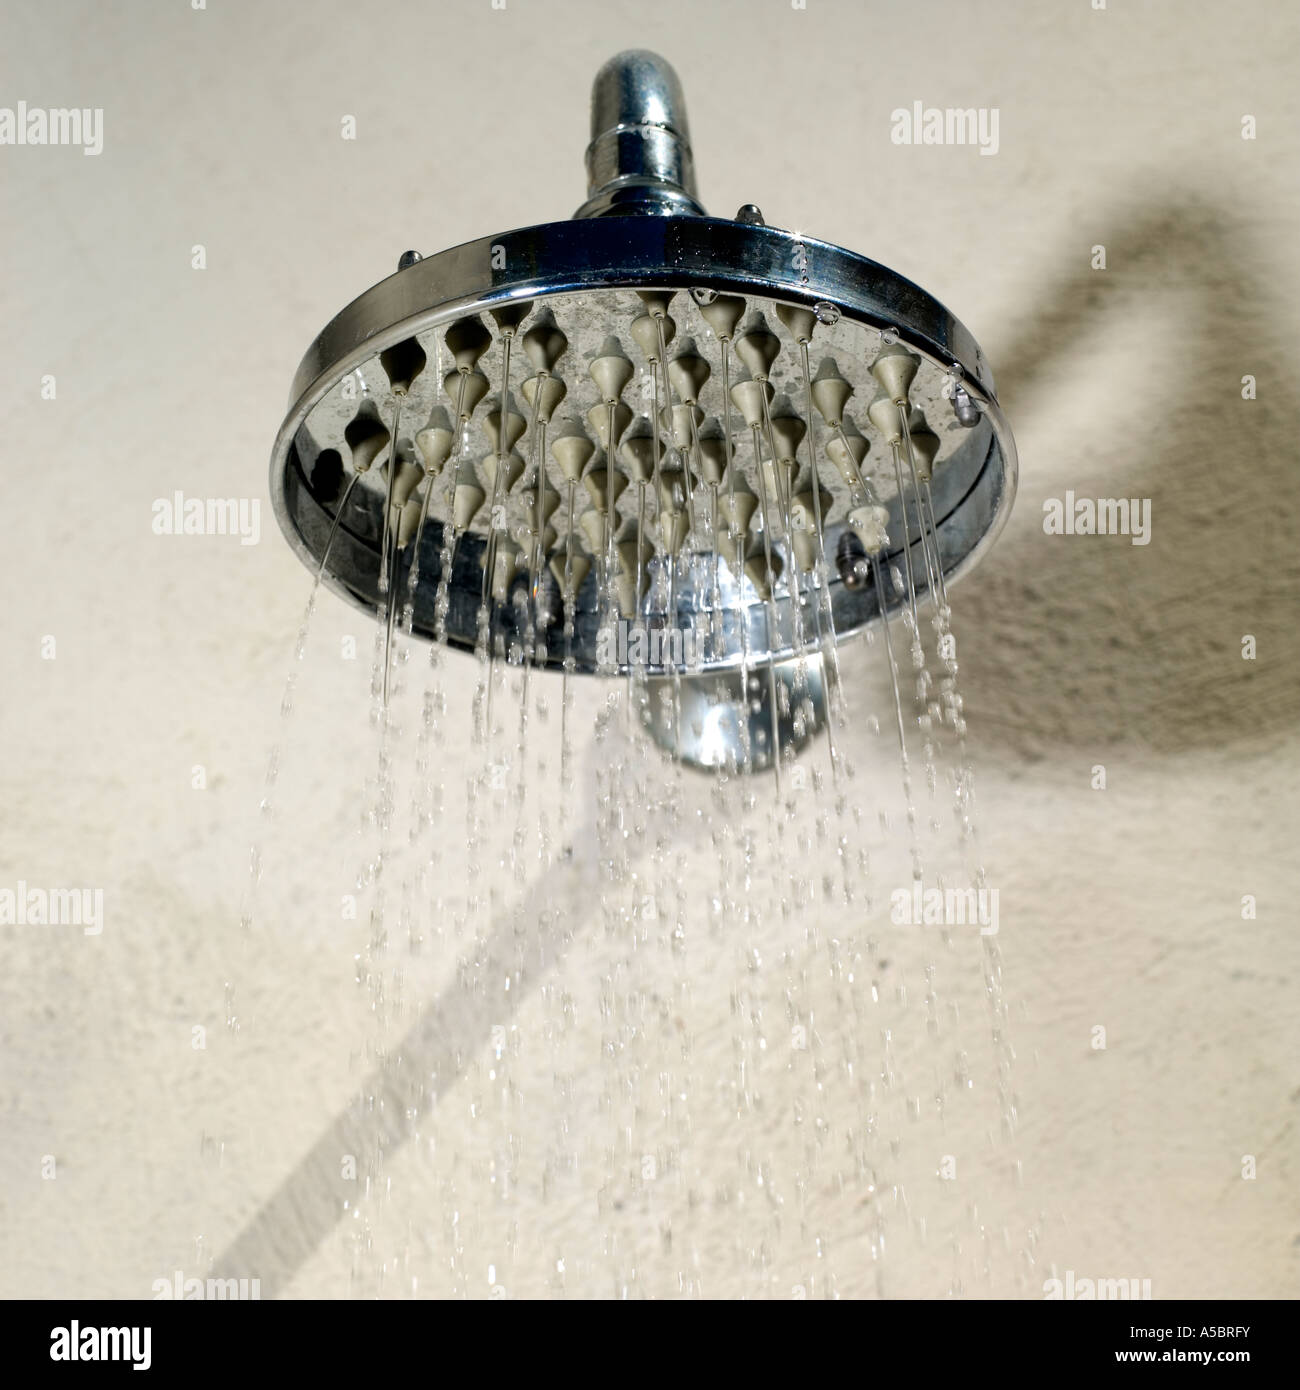 Water jet from wide shower head conservation shortages and rationing, political global issue - Stock Image